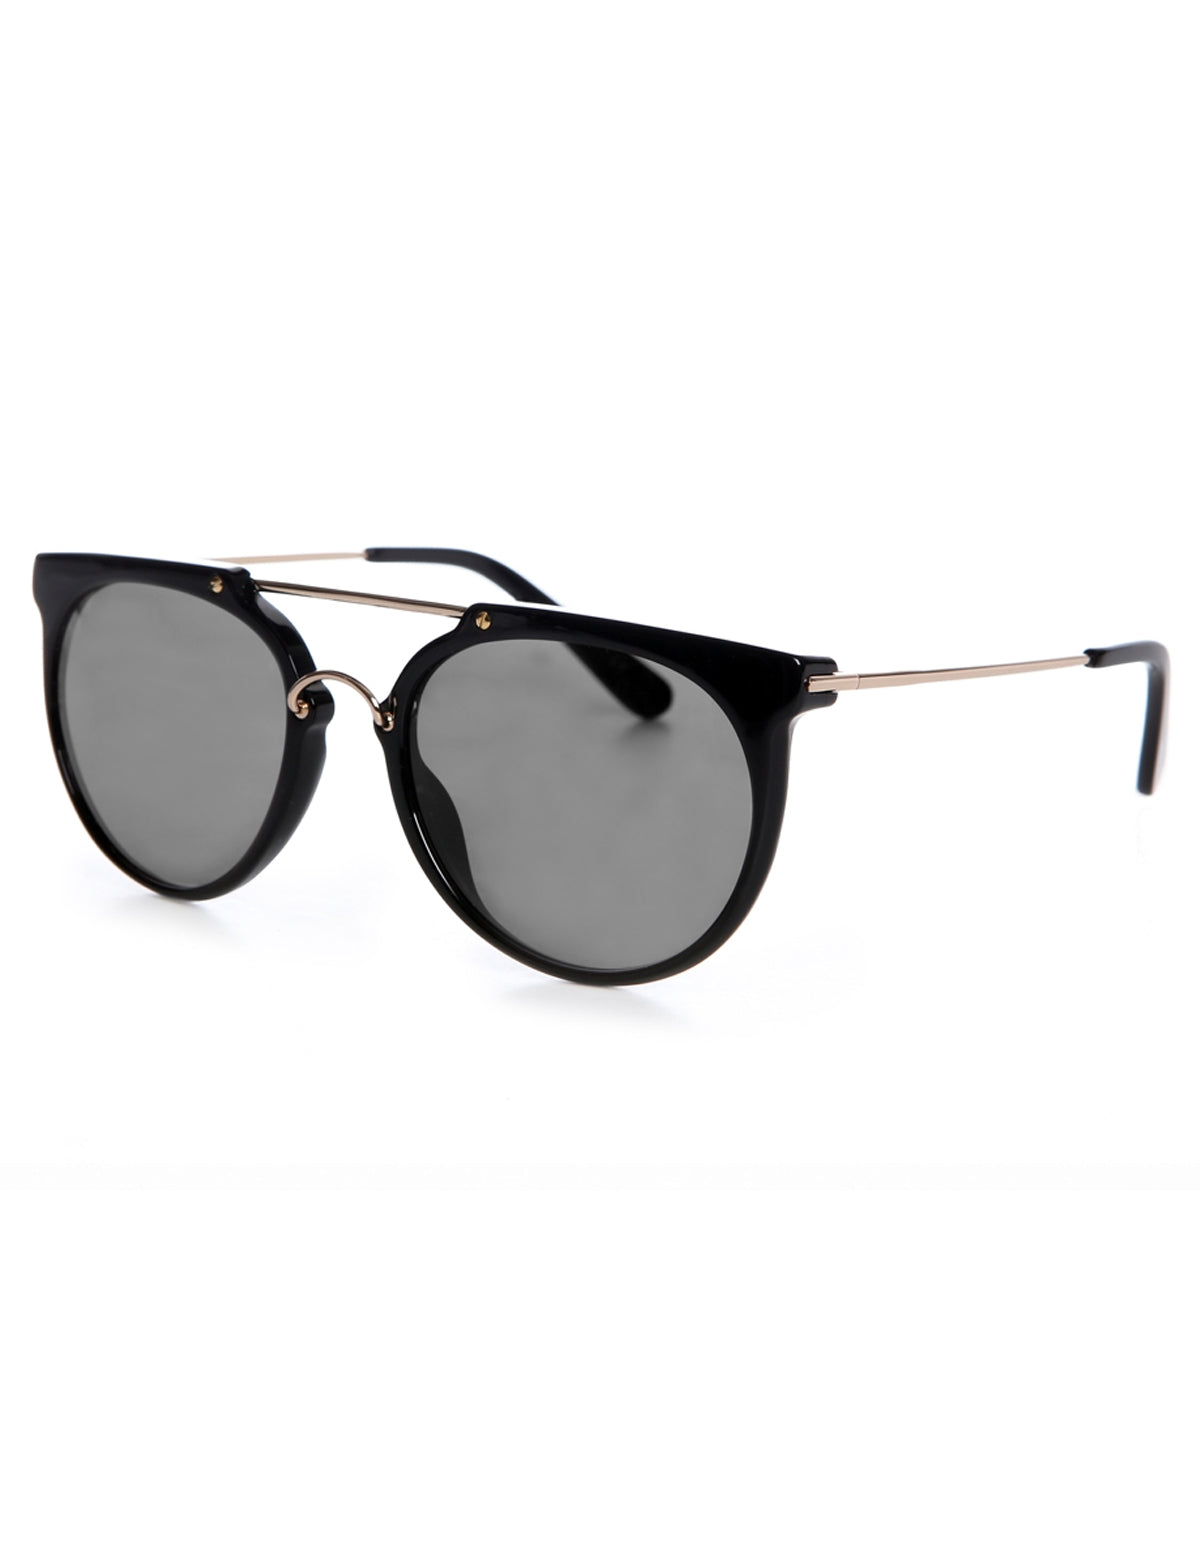 Wonderland Stateline Sunglasses Gloss Black Grey CZ